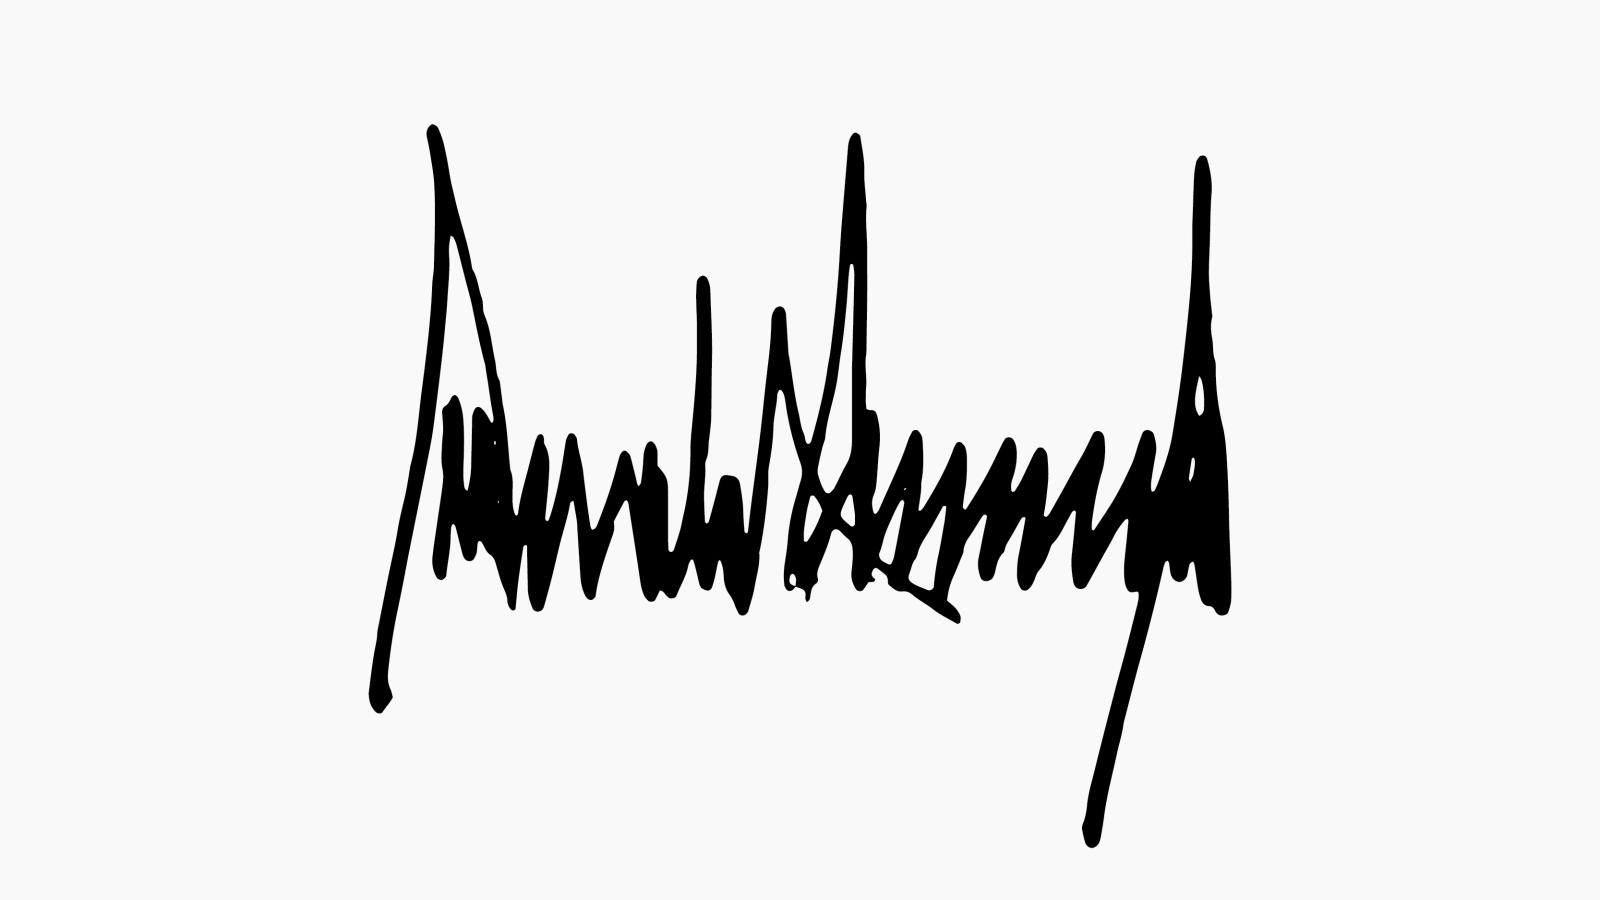 Donald Trump official signature: Trump takes a tediously.